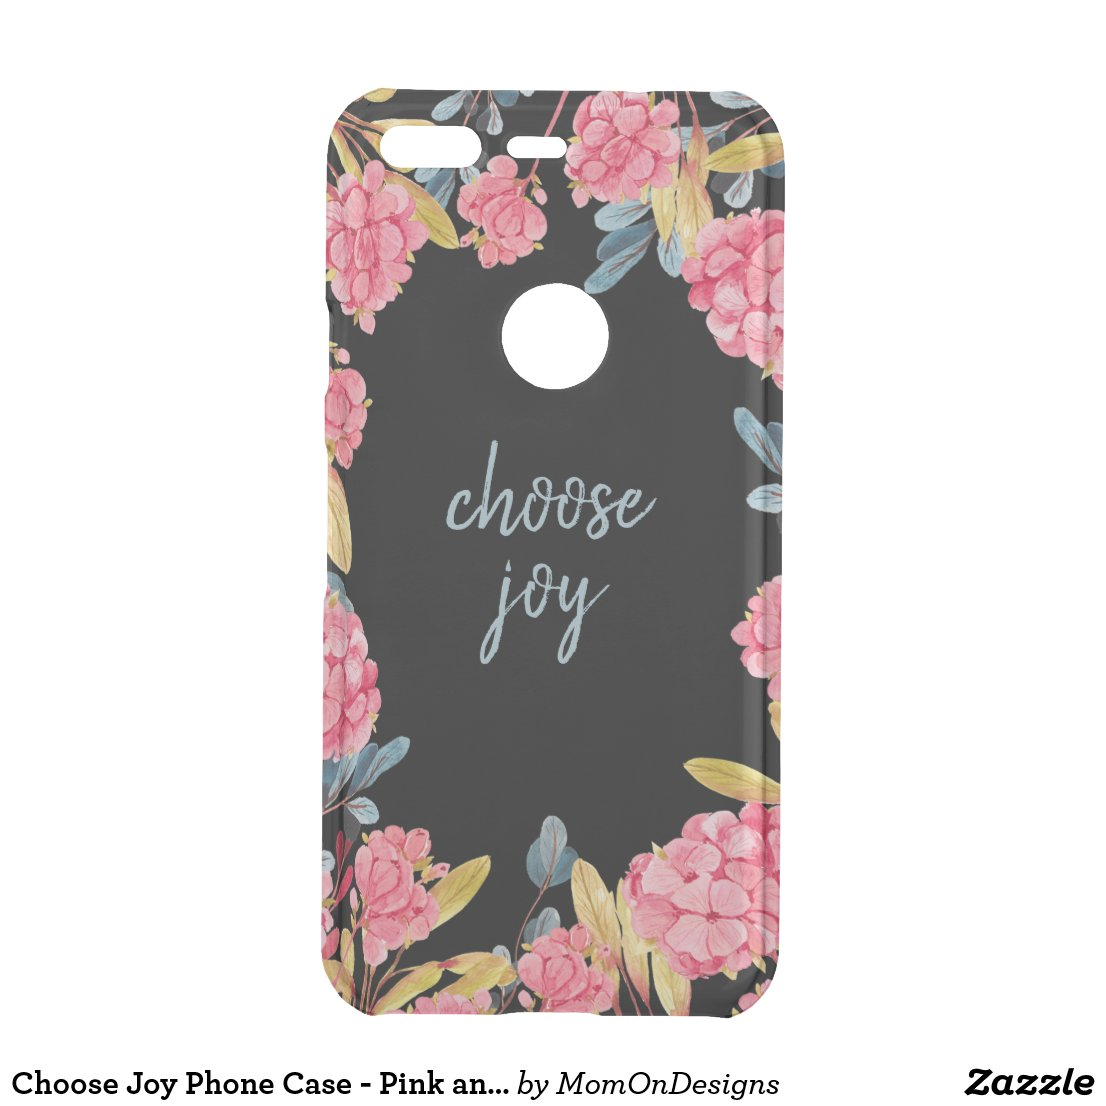 Choose Joy Phone Case - Pink and Blue Floral